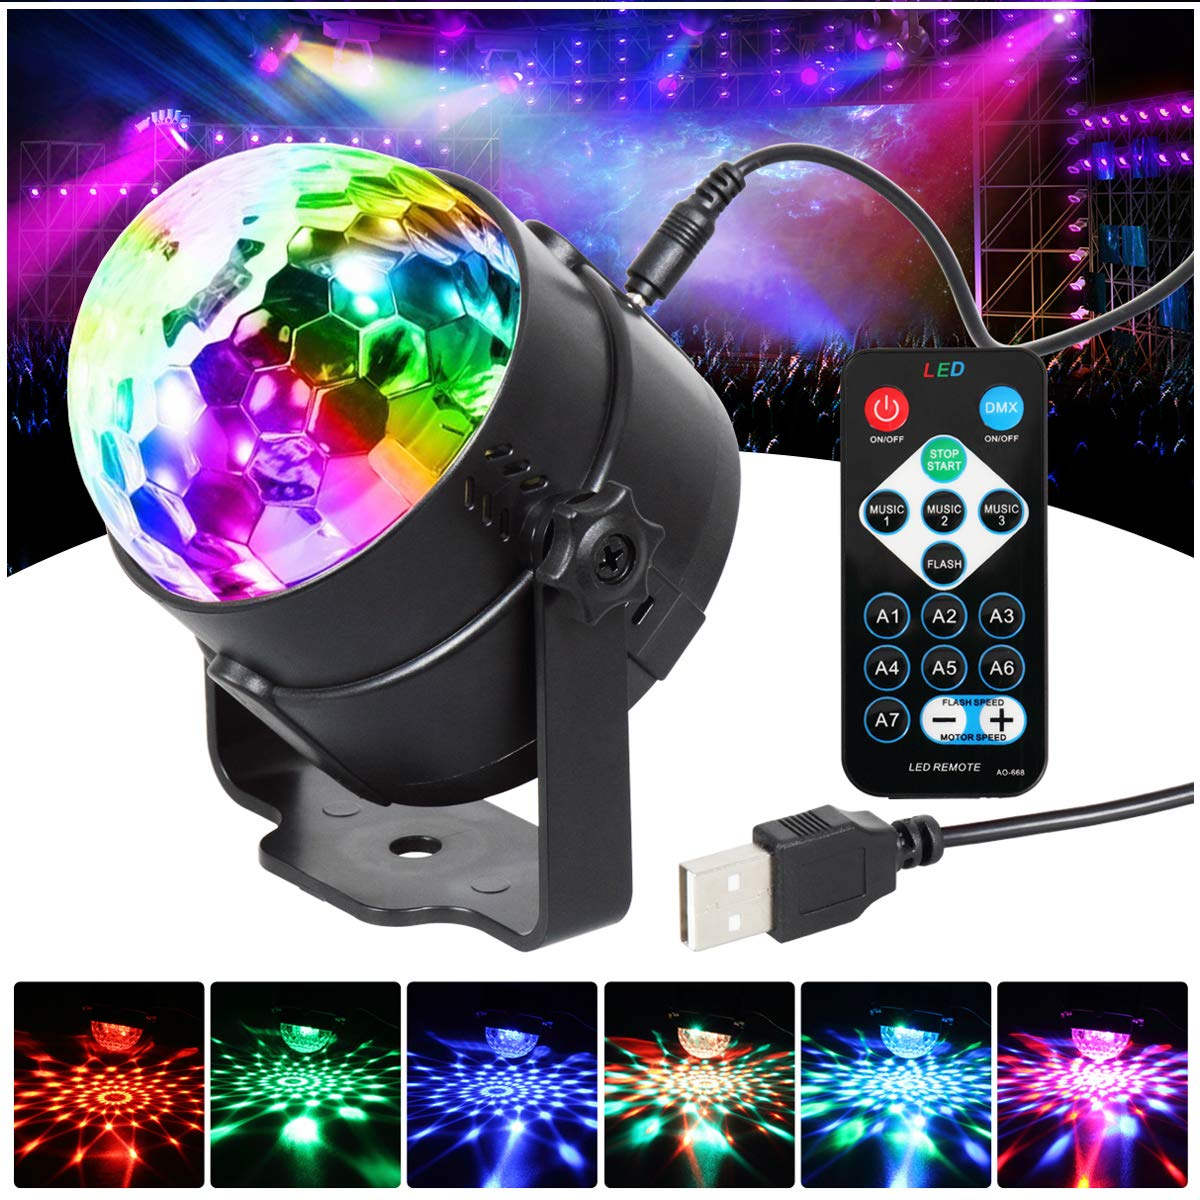 Party Lights Disco Ball 7 Colors Sound Activated Stage Disco Lights Remote Control Strobe Lamp USB Plug in 5V laser Lighting LED Effect Show RBG Dance Ball Mood light For Birthday DJ Bar Pub Club Kara